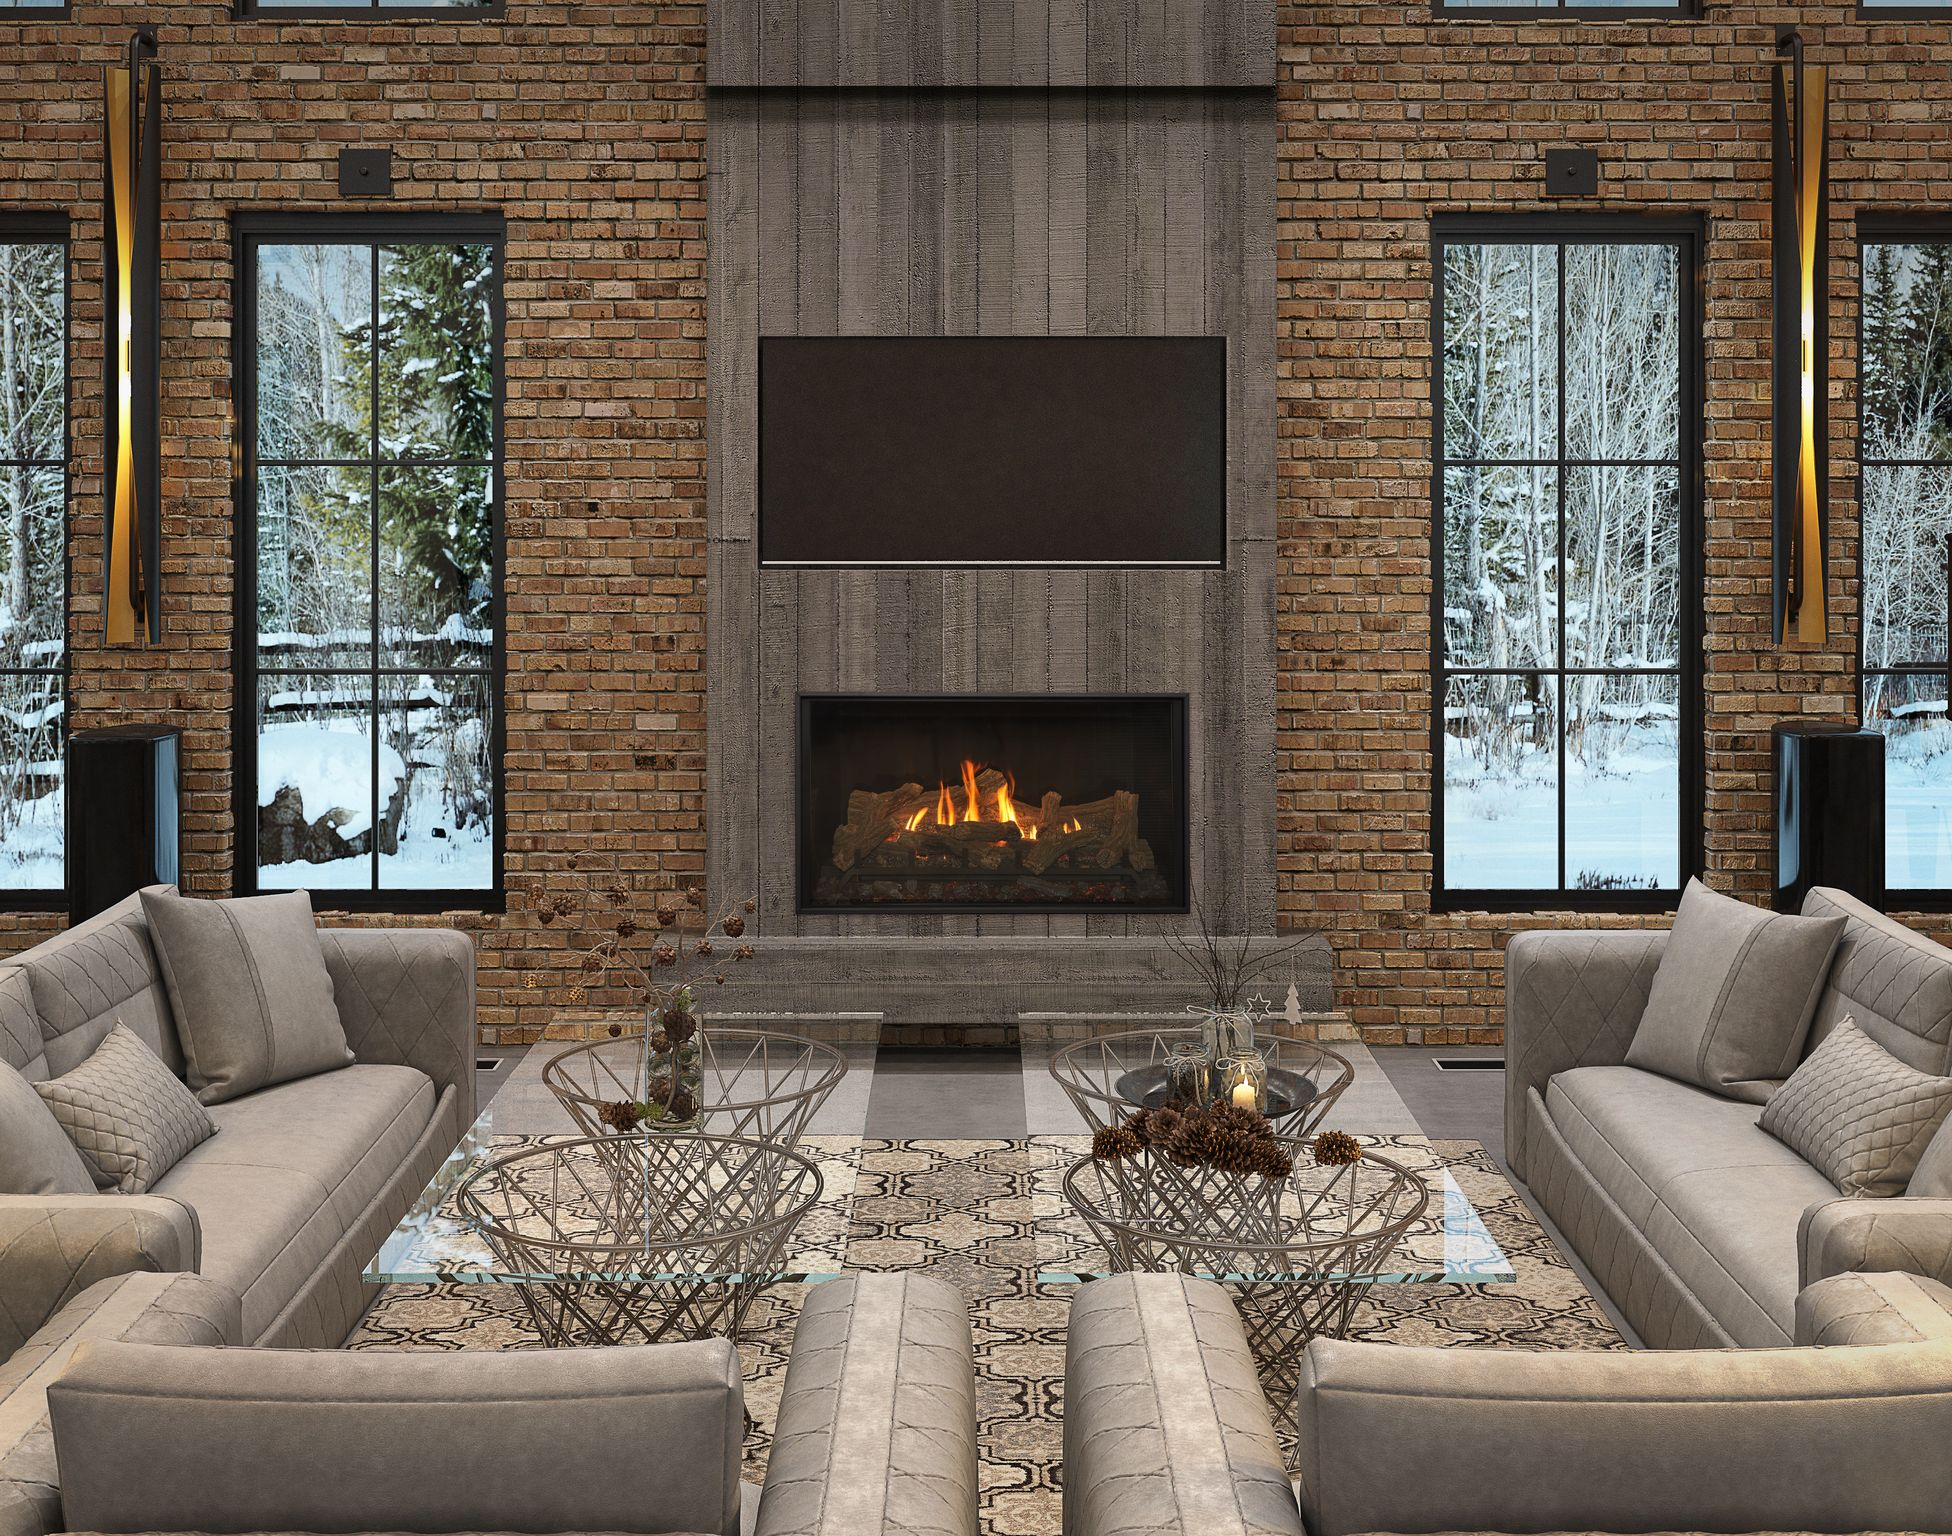 4 Ways Fireplaces Add Ambiance to Your Home (Without the Heat!)